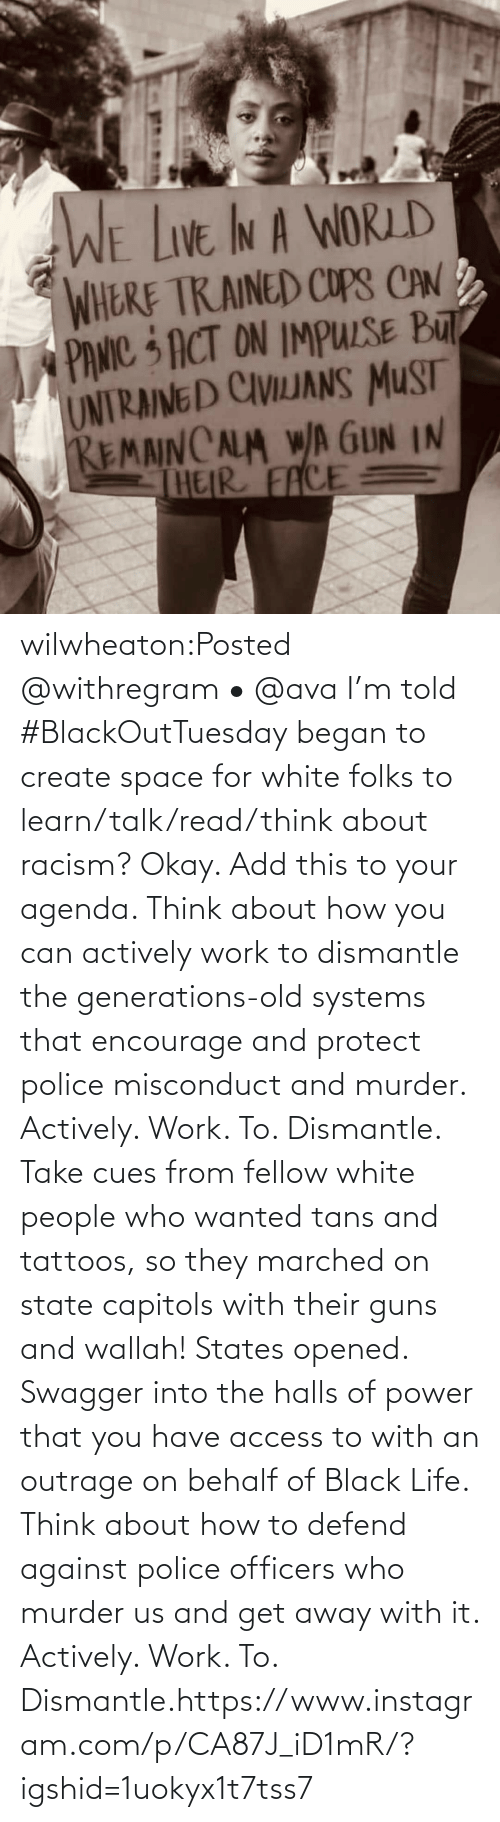 this: wilwheaton:Posted @withregram • @ava I'm told #BlackOutTuesday began to create space for white folks to learn/talk/read/think about racism? Okay. Add this to your agenda. Think about how you can actively work to dismantle the generations-old systems that encourage and protect police misconduct and murder. Actively. Work. To. Dismantle. Take cues from fellow white people who wanted tans and tattoos, so they marched on state capitols with their guns and wallah! States opened. Swagger into the halls of power that you have access to with an outrage on behalf of Black Life. Think about how to defend against police officers who murder us and get away with it. Actively. Work. To. Dismantle.https://www.instagram.com/p/CA87J_iD1mR/?igshid=1uokyx1t7tss7